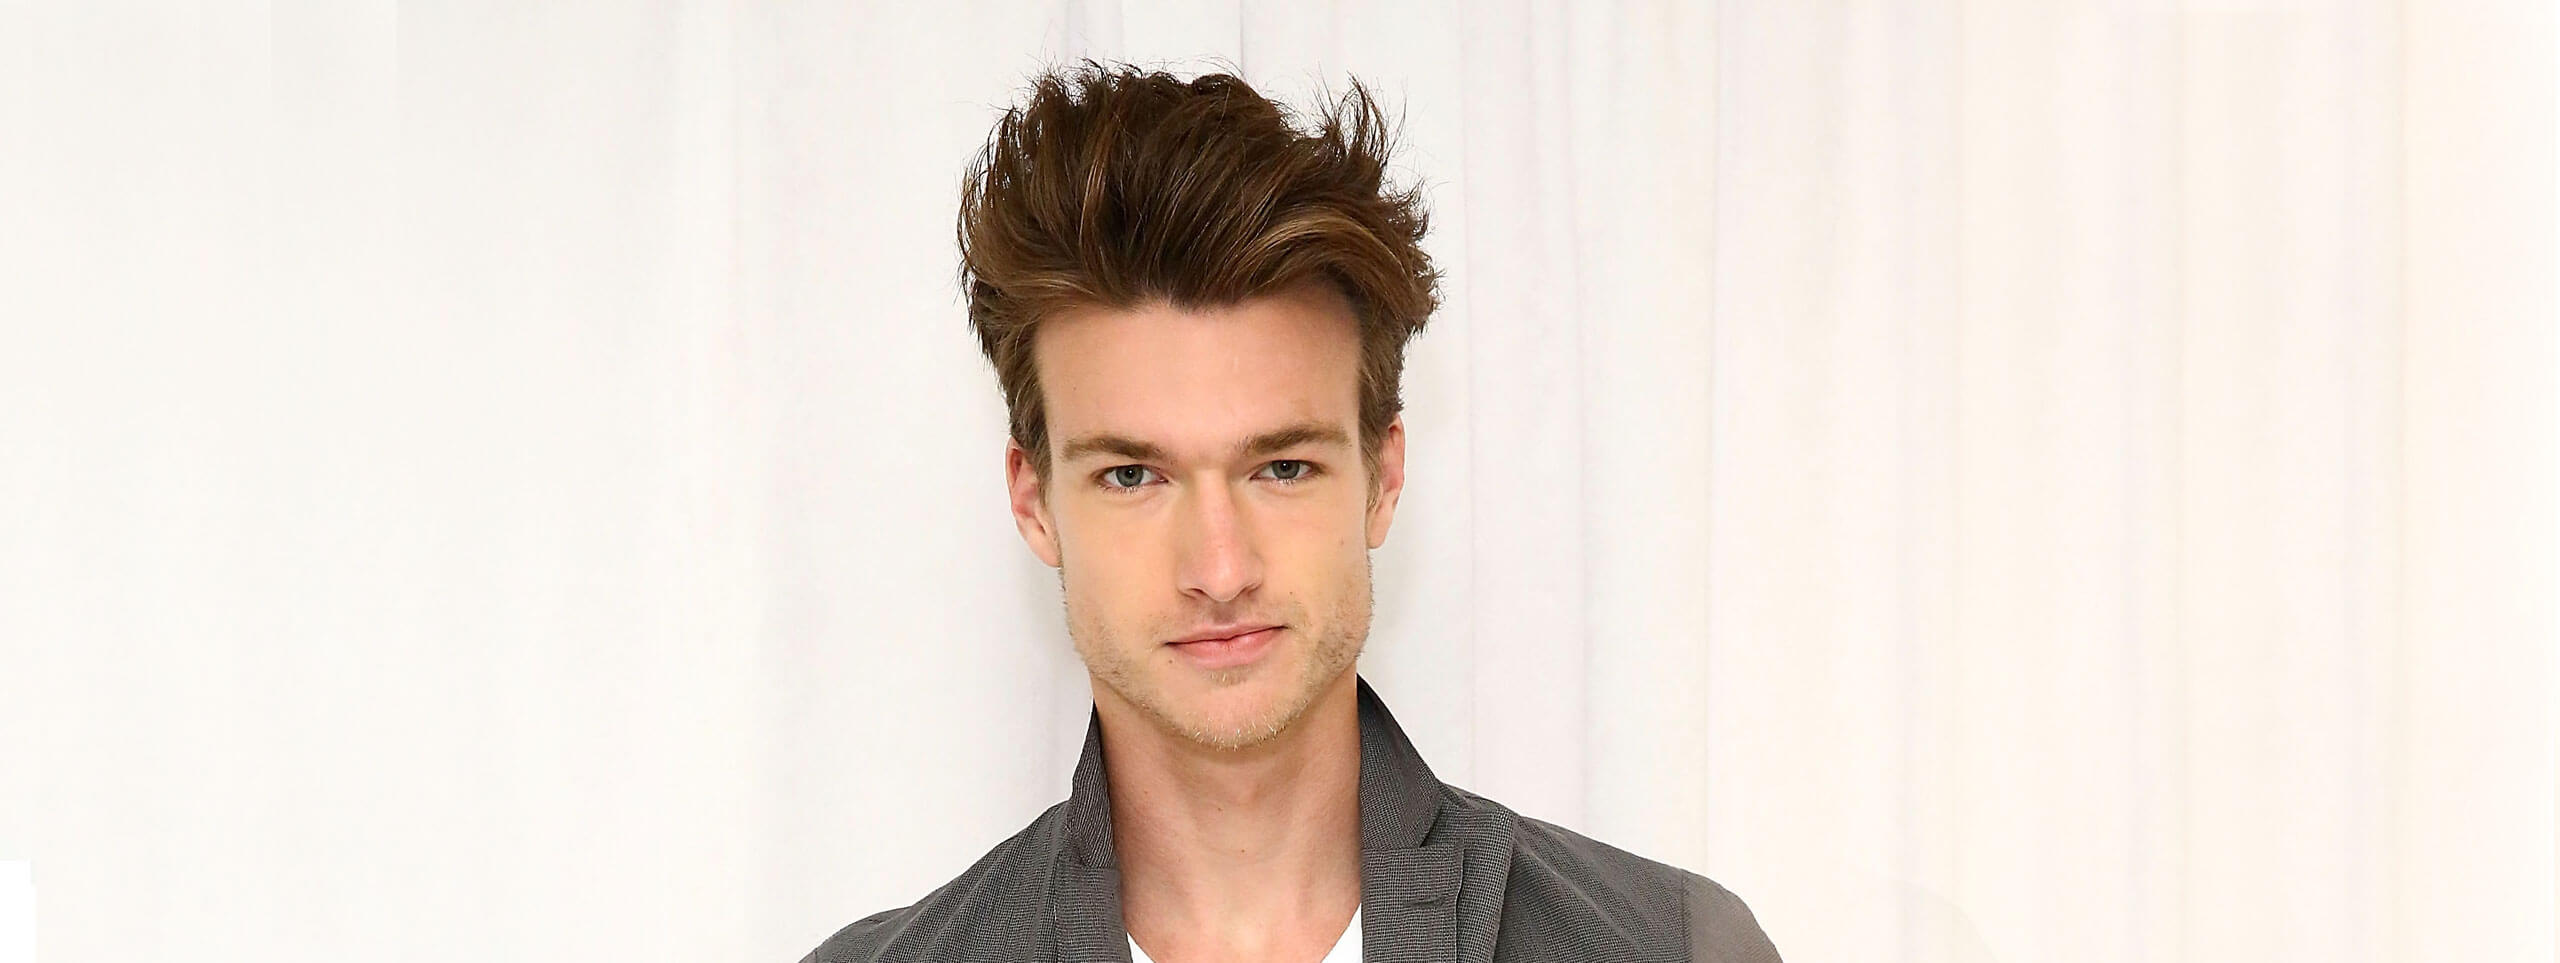 c0120d9f231 mens-hairstyles-trends